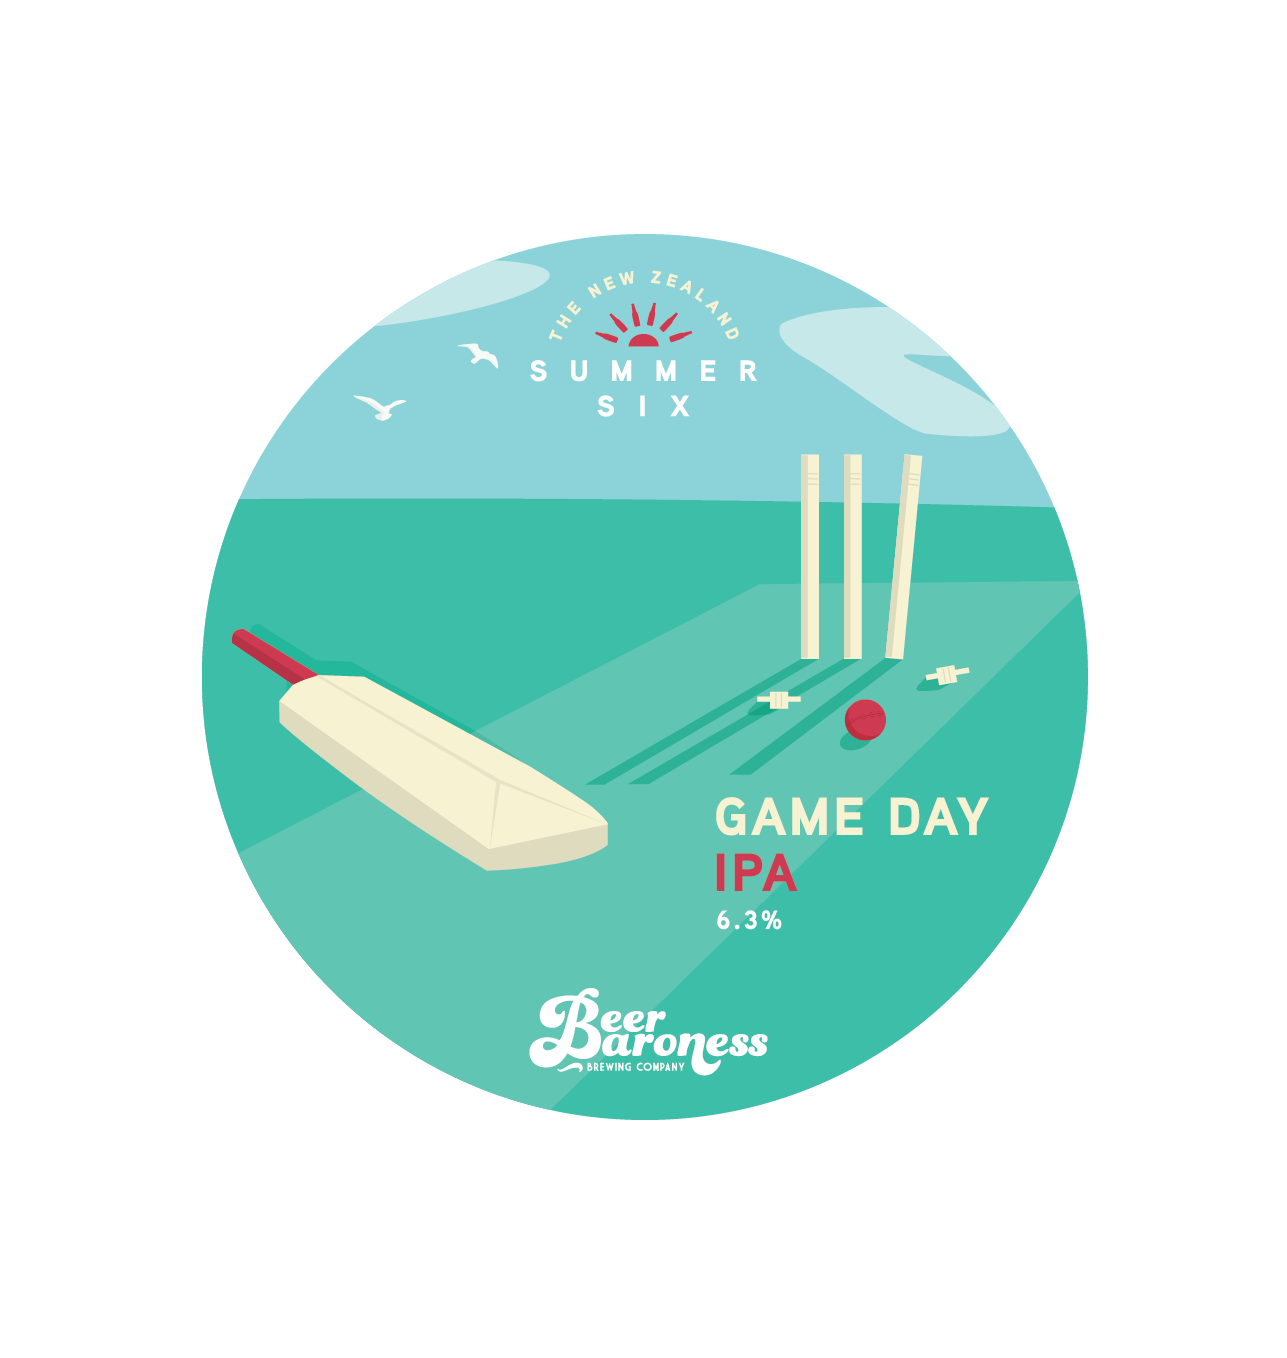 Beer Baroness Summer Six - Game Day IPA - Tap Badge.png